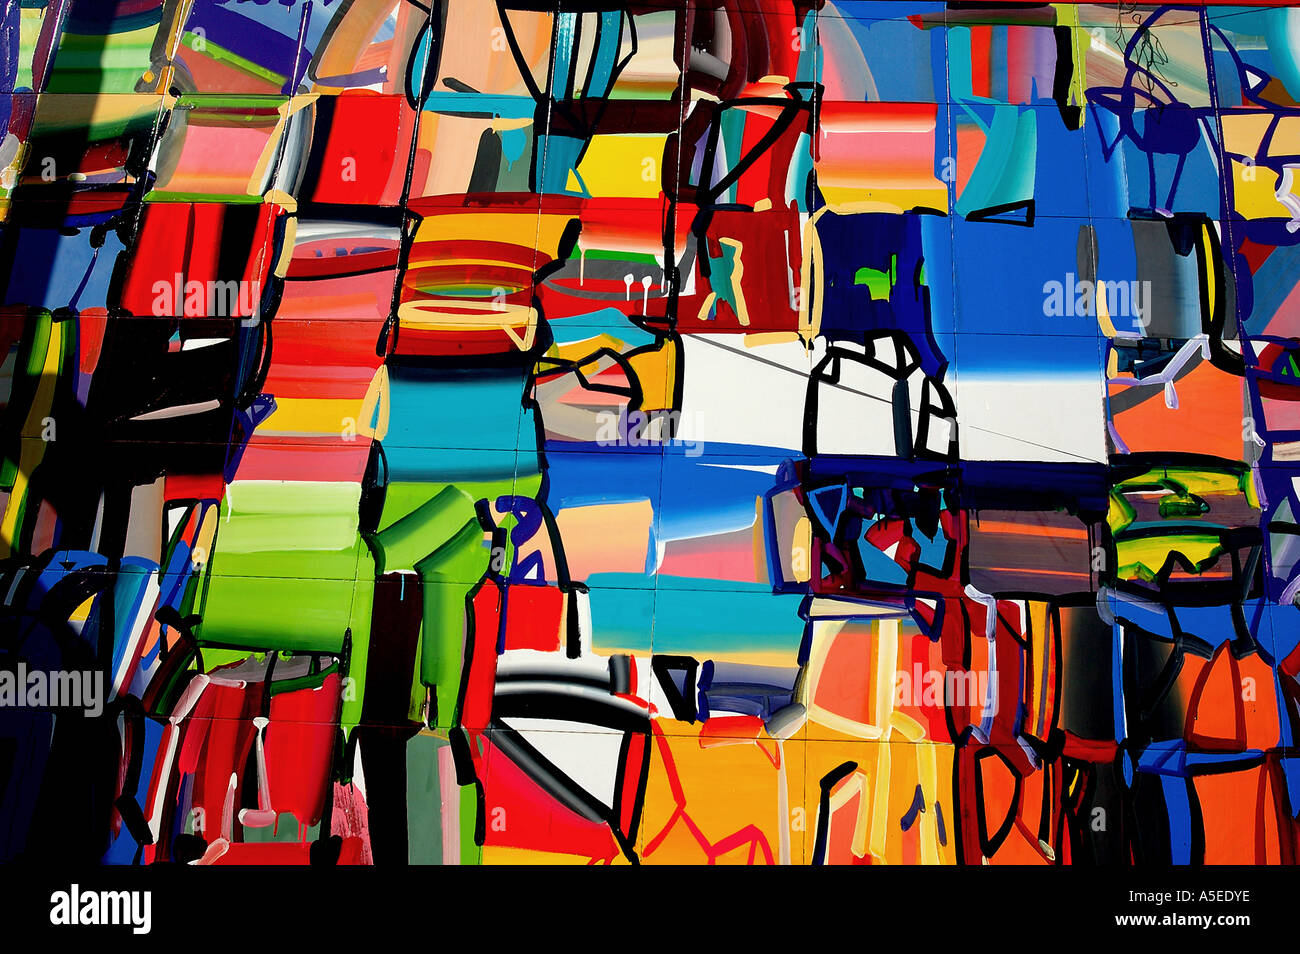 PKB77971 Abstract Art painted on the walls - Stock Image